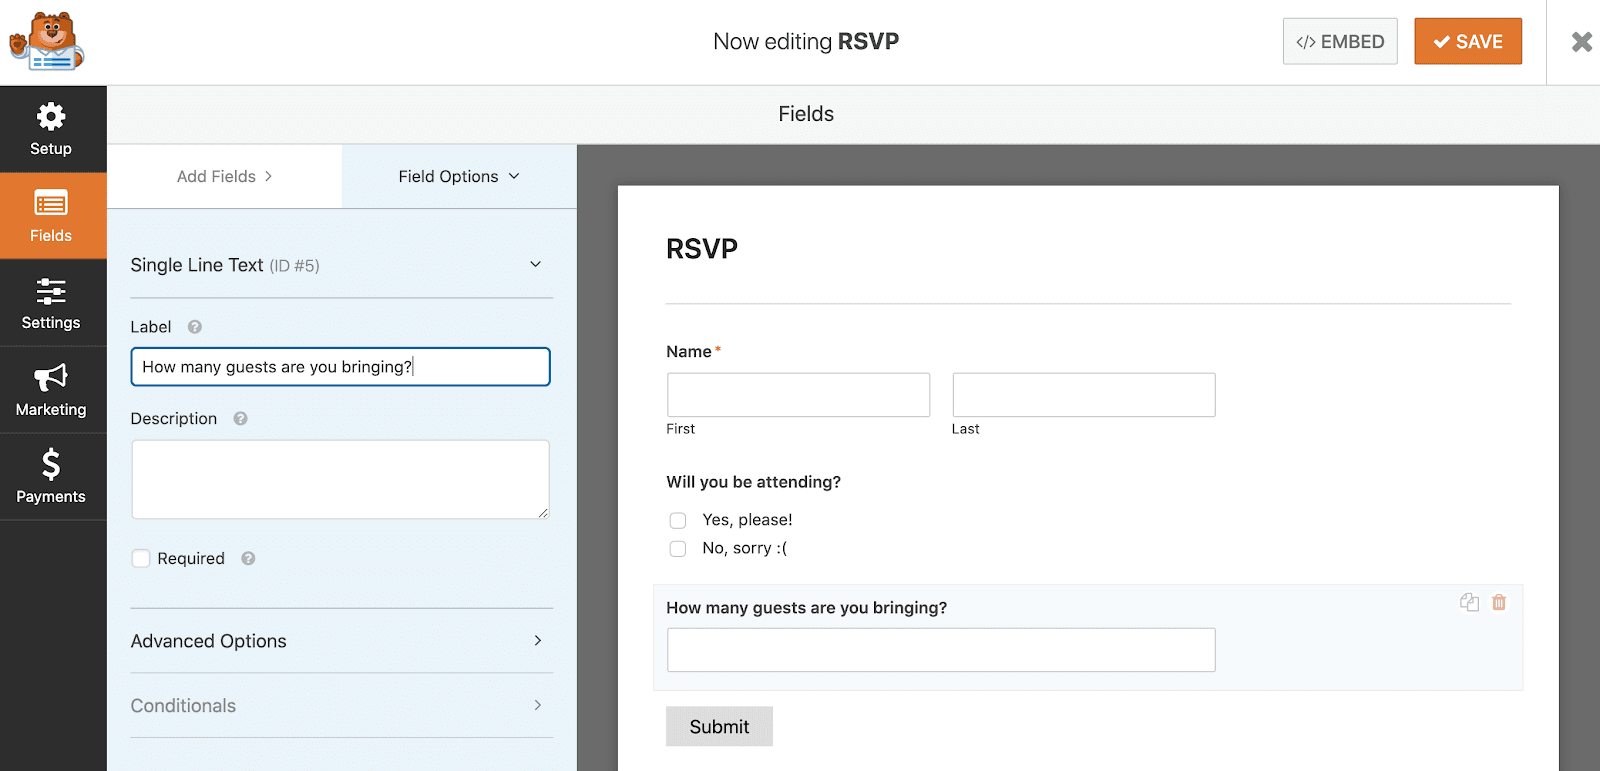 How to add additional fields in WPForms